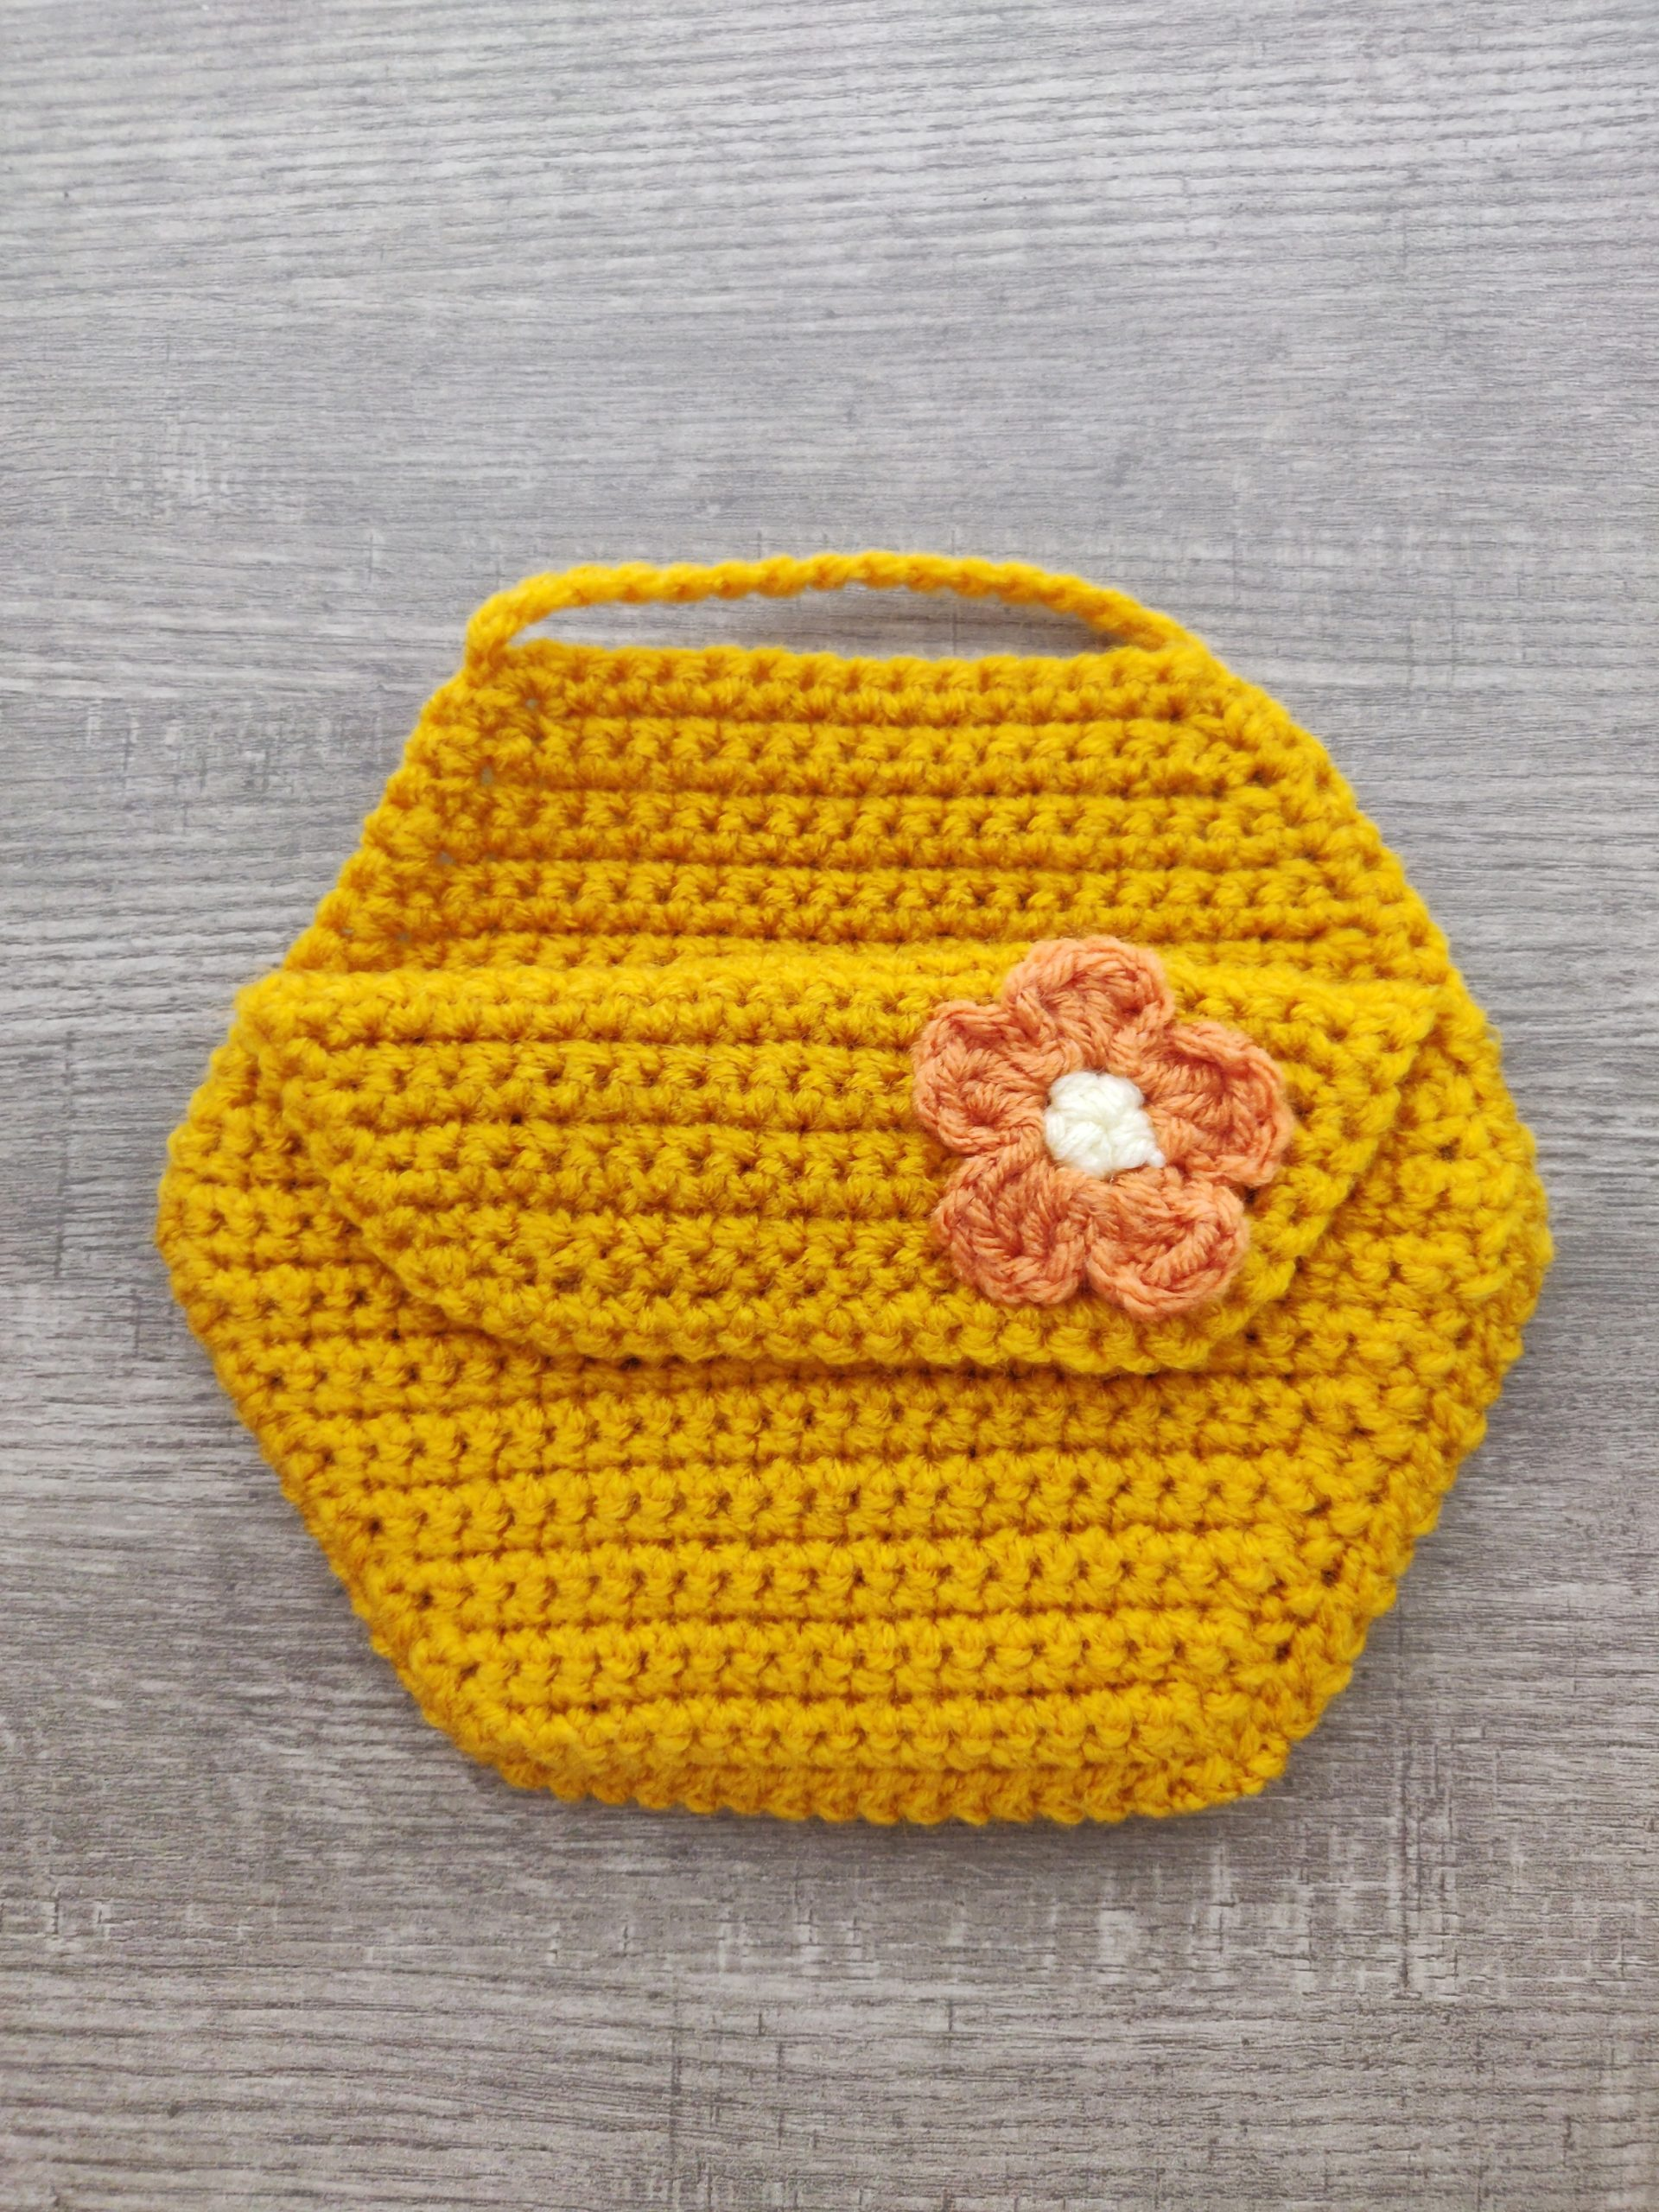 Gold honey comb bee holder with an orange flower.